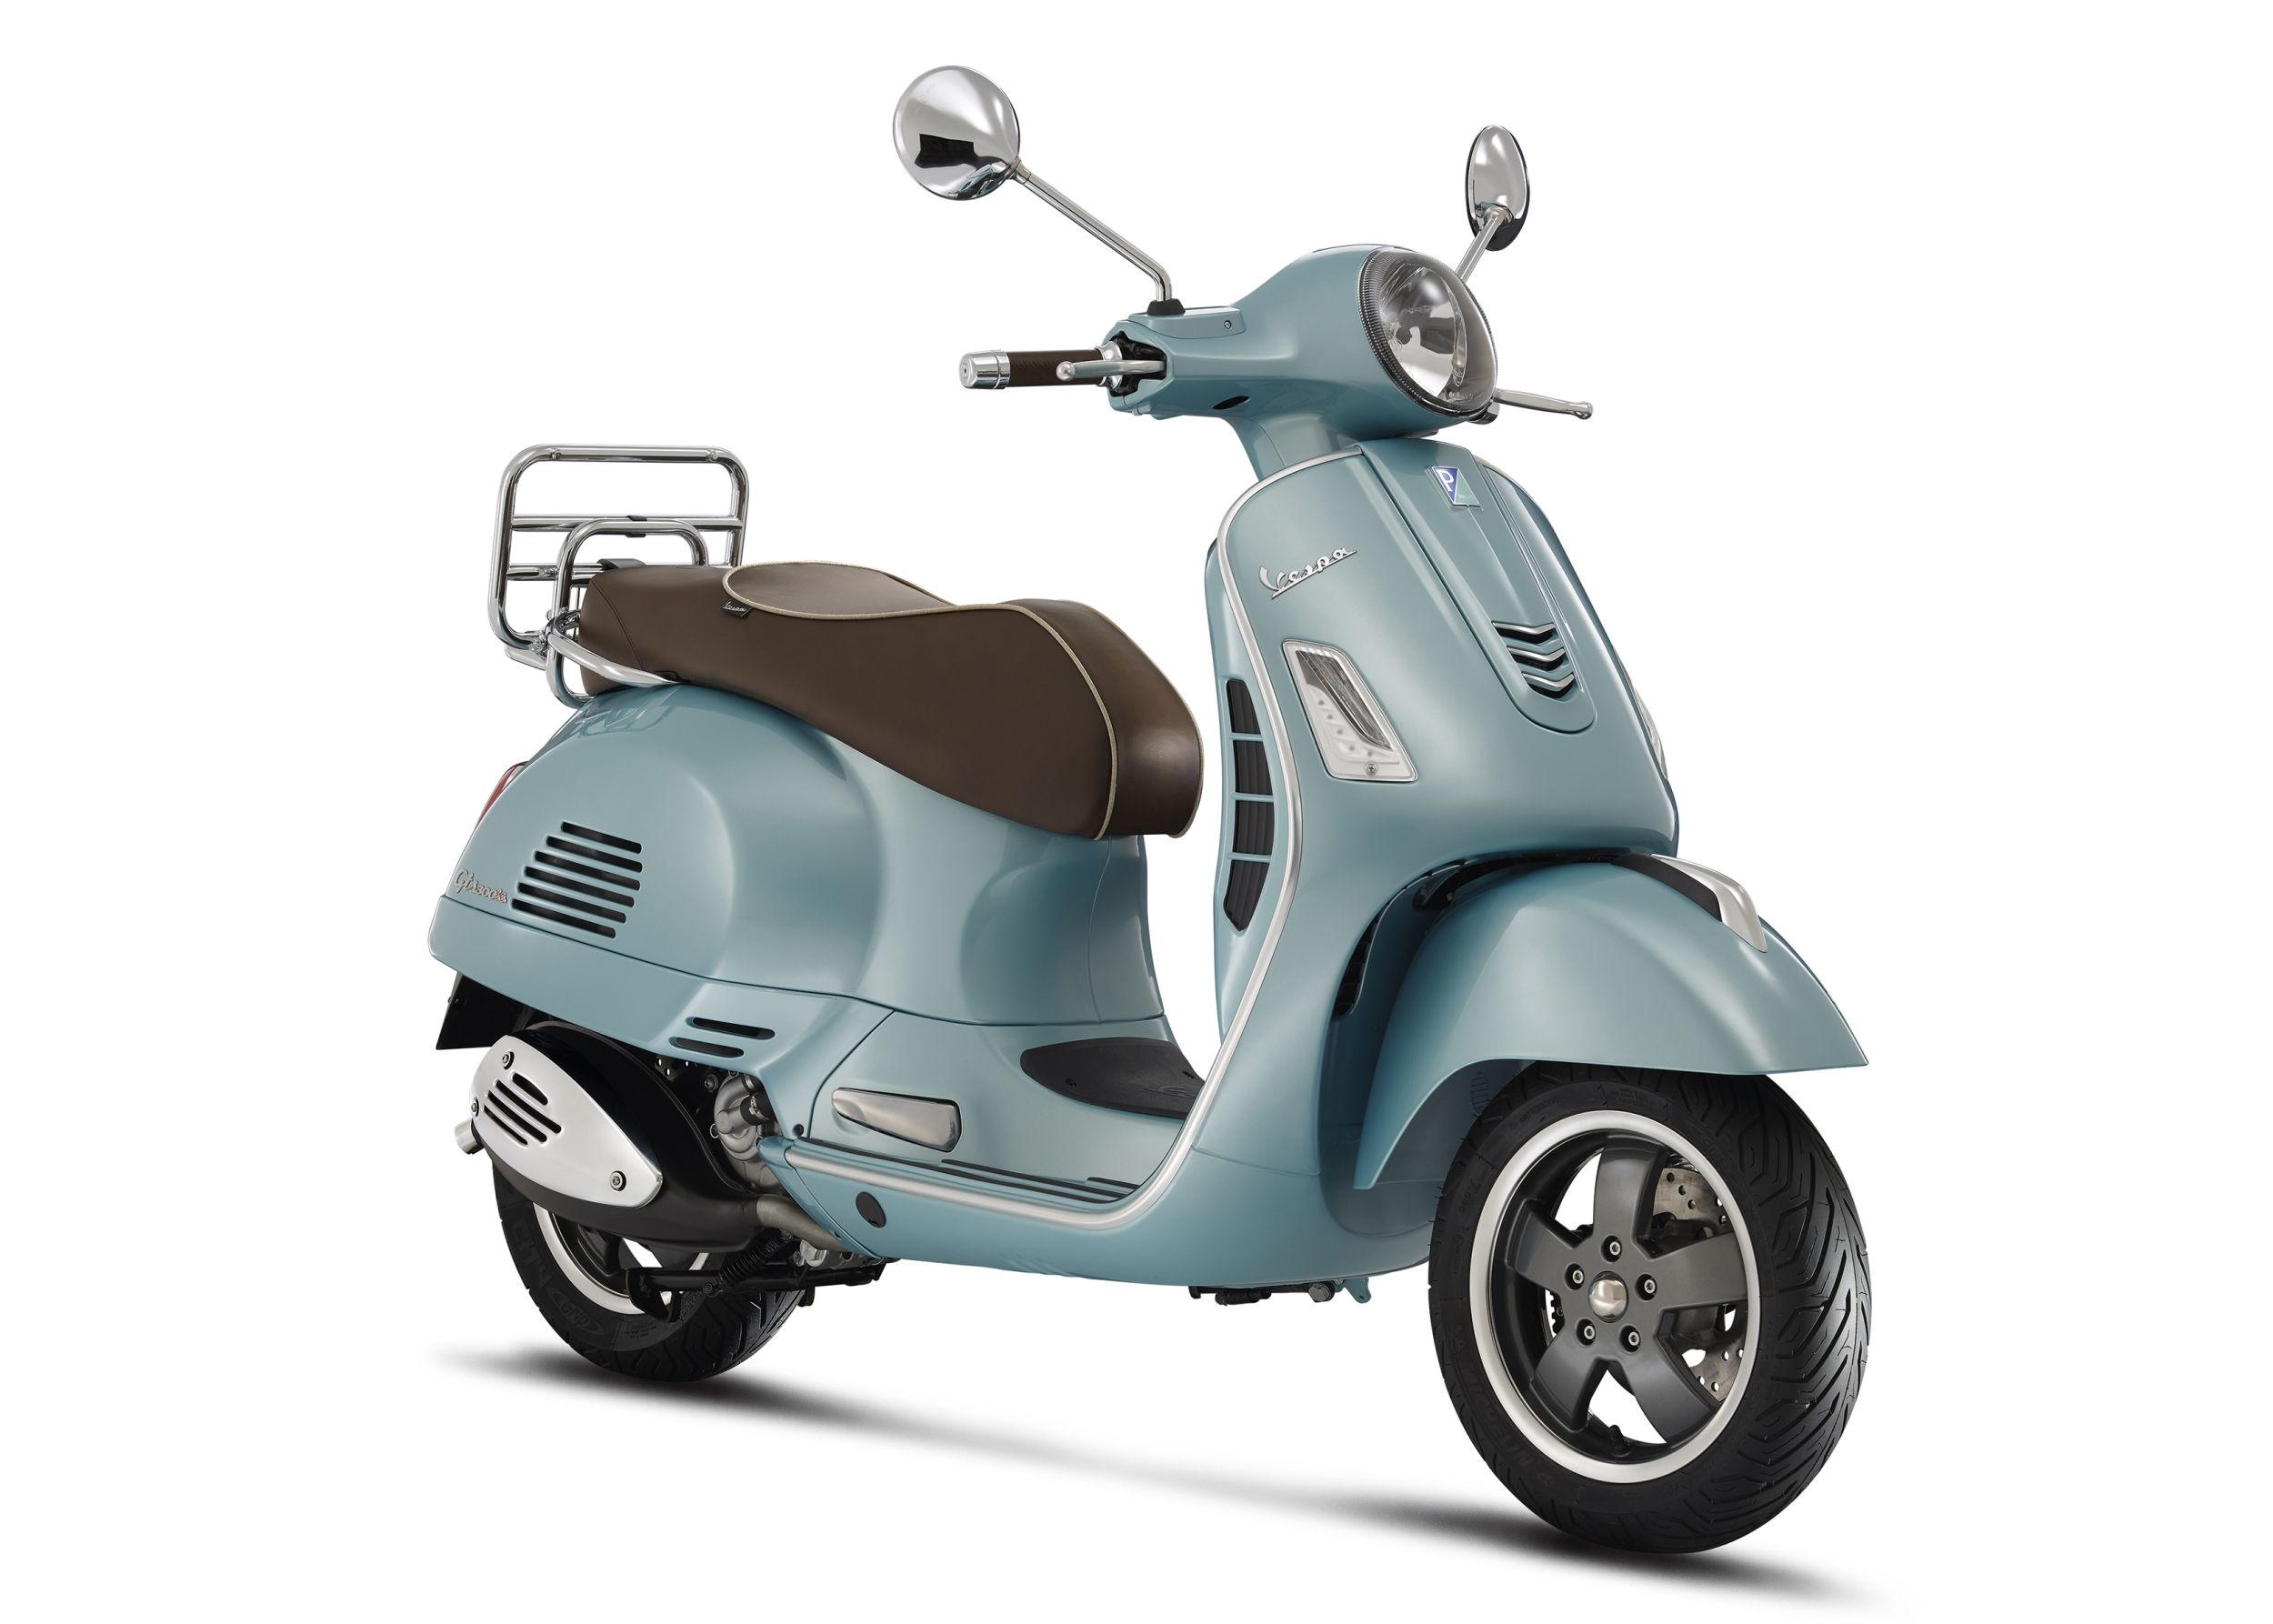 vespa gts 125 i e all technical data of the model gts 125 i e from vespa. Black Bedroom Furniture Sets. Home Design Ideas